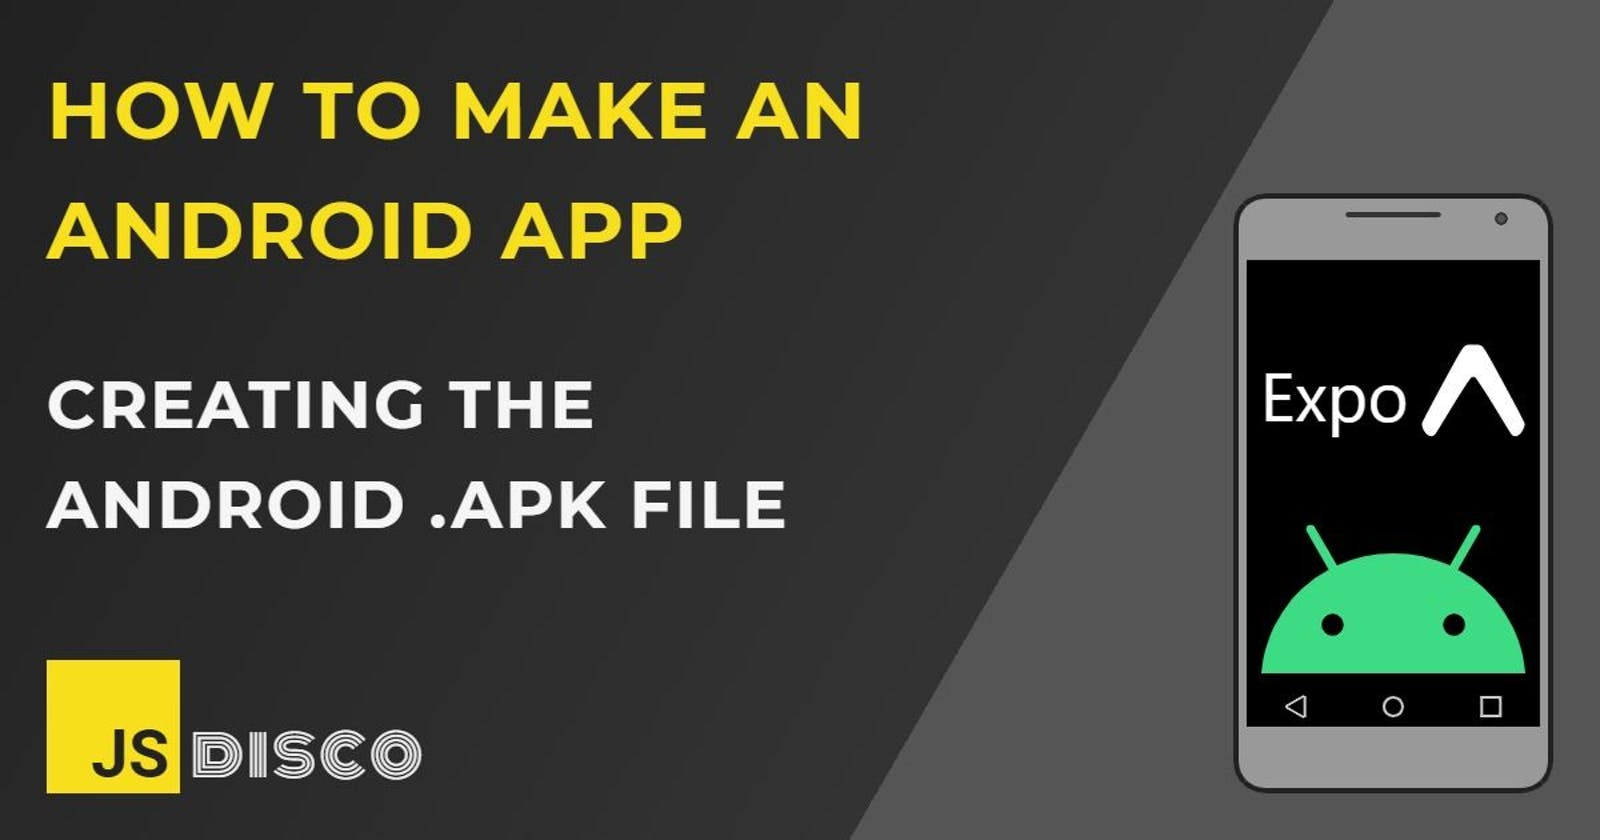 Creating the Android .apk file